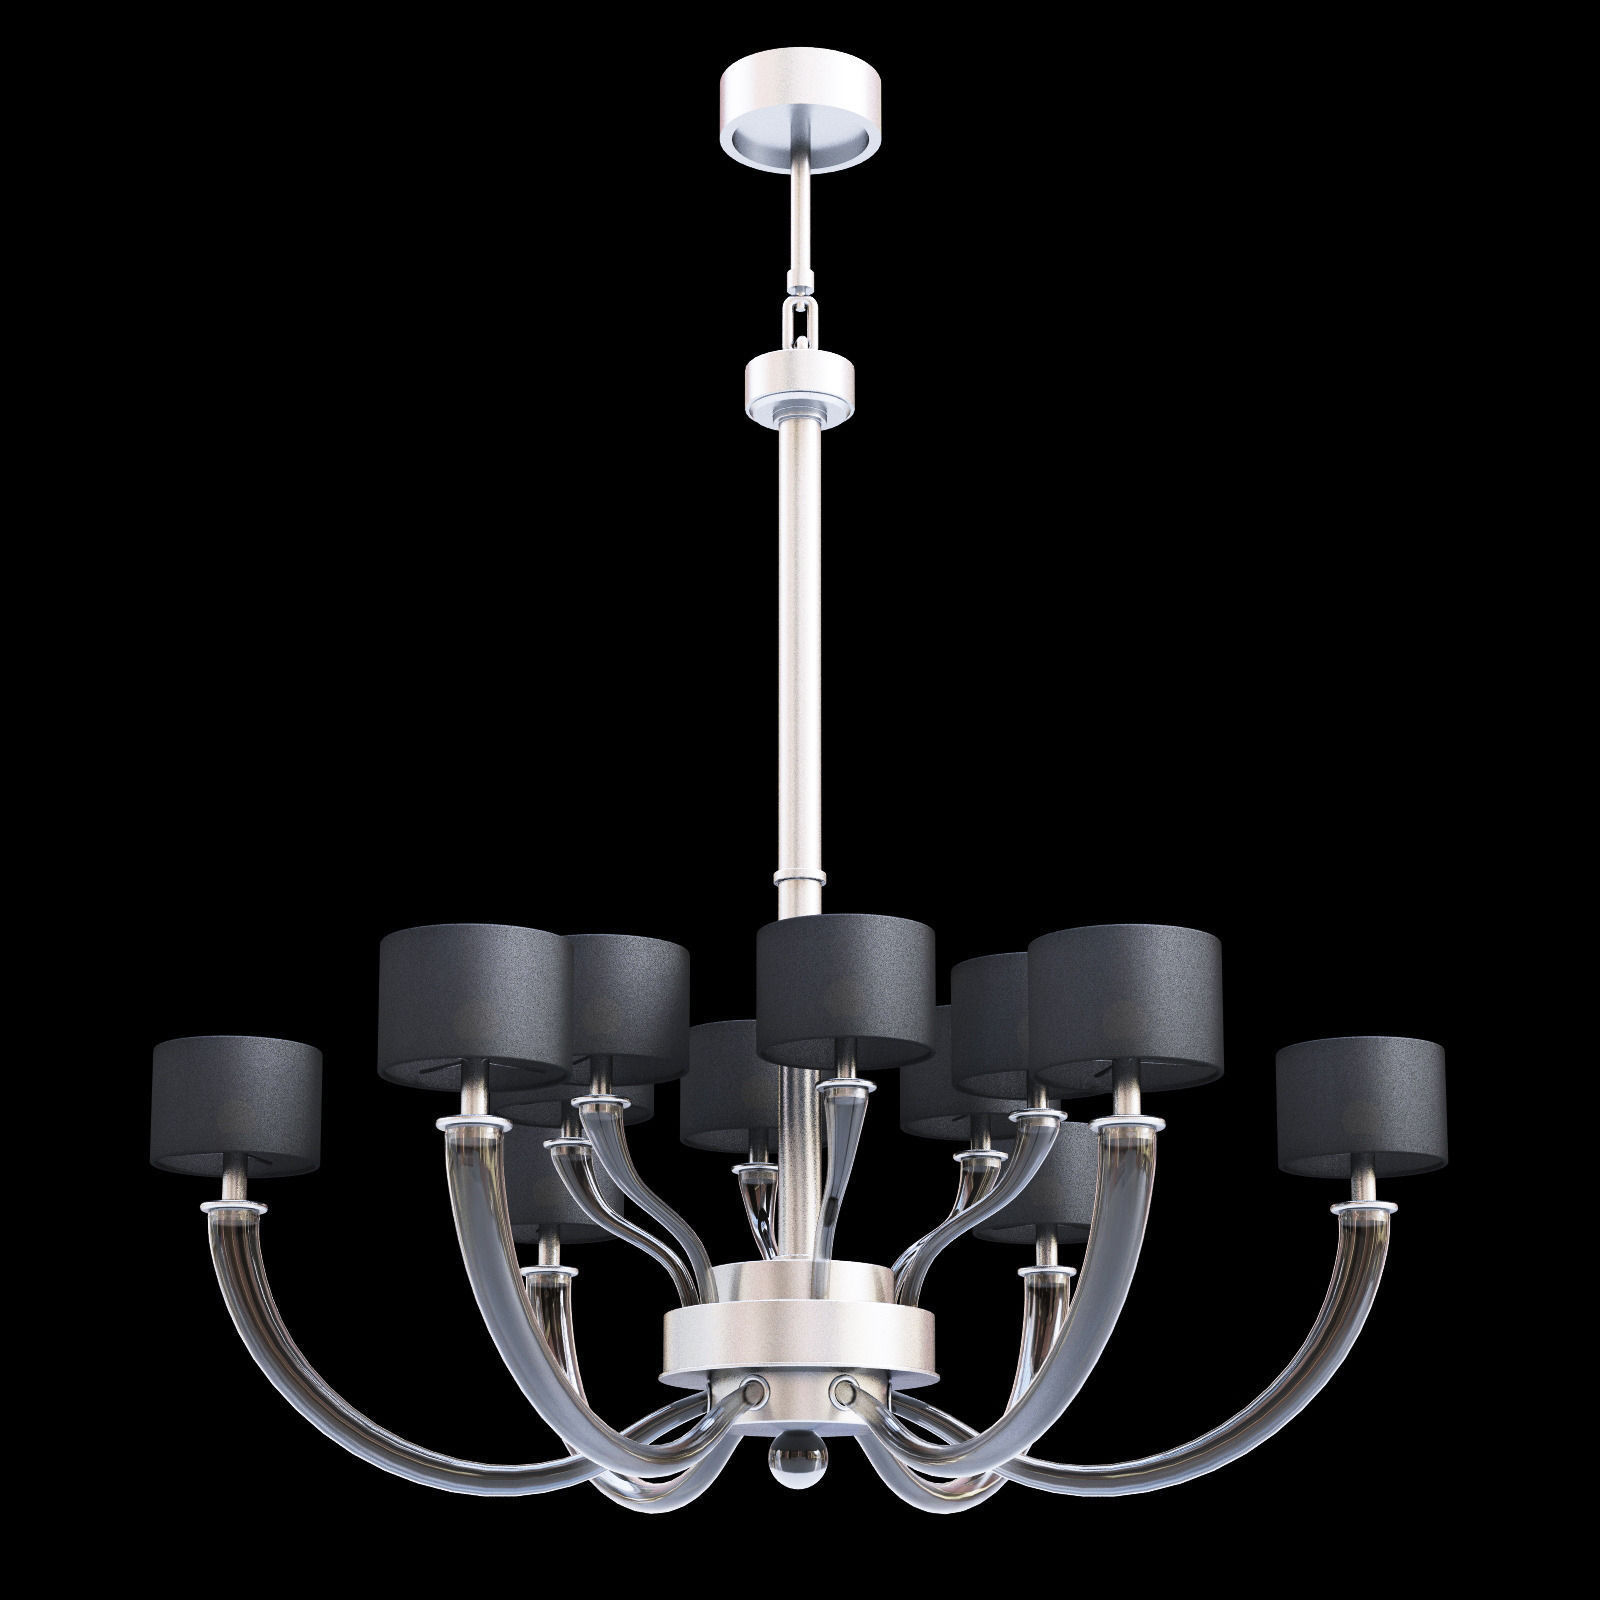 Terrific Chandelier Acoustic Max Pictures - Chandelier Designs for ...